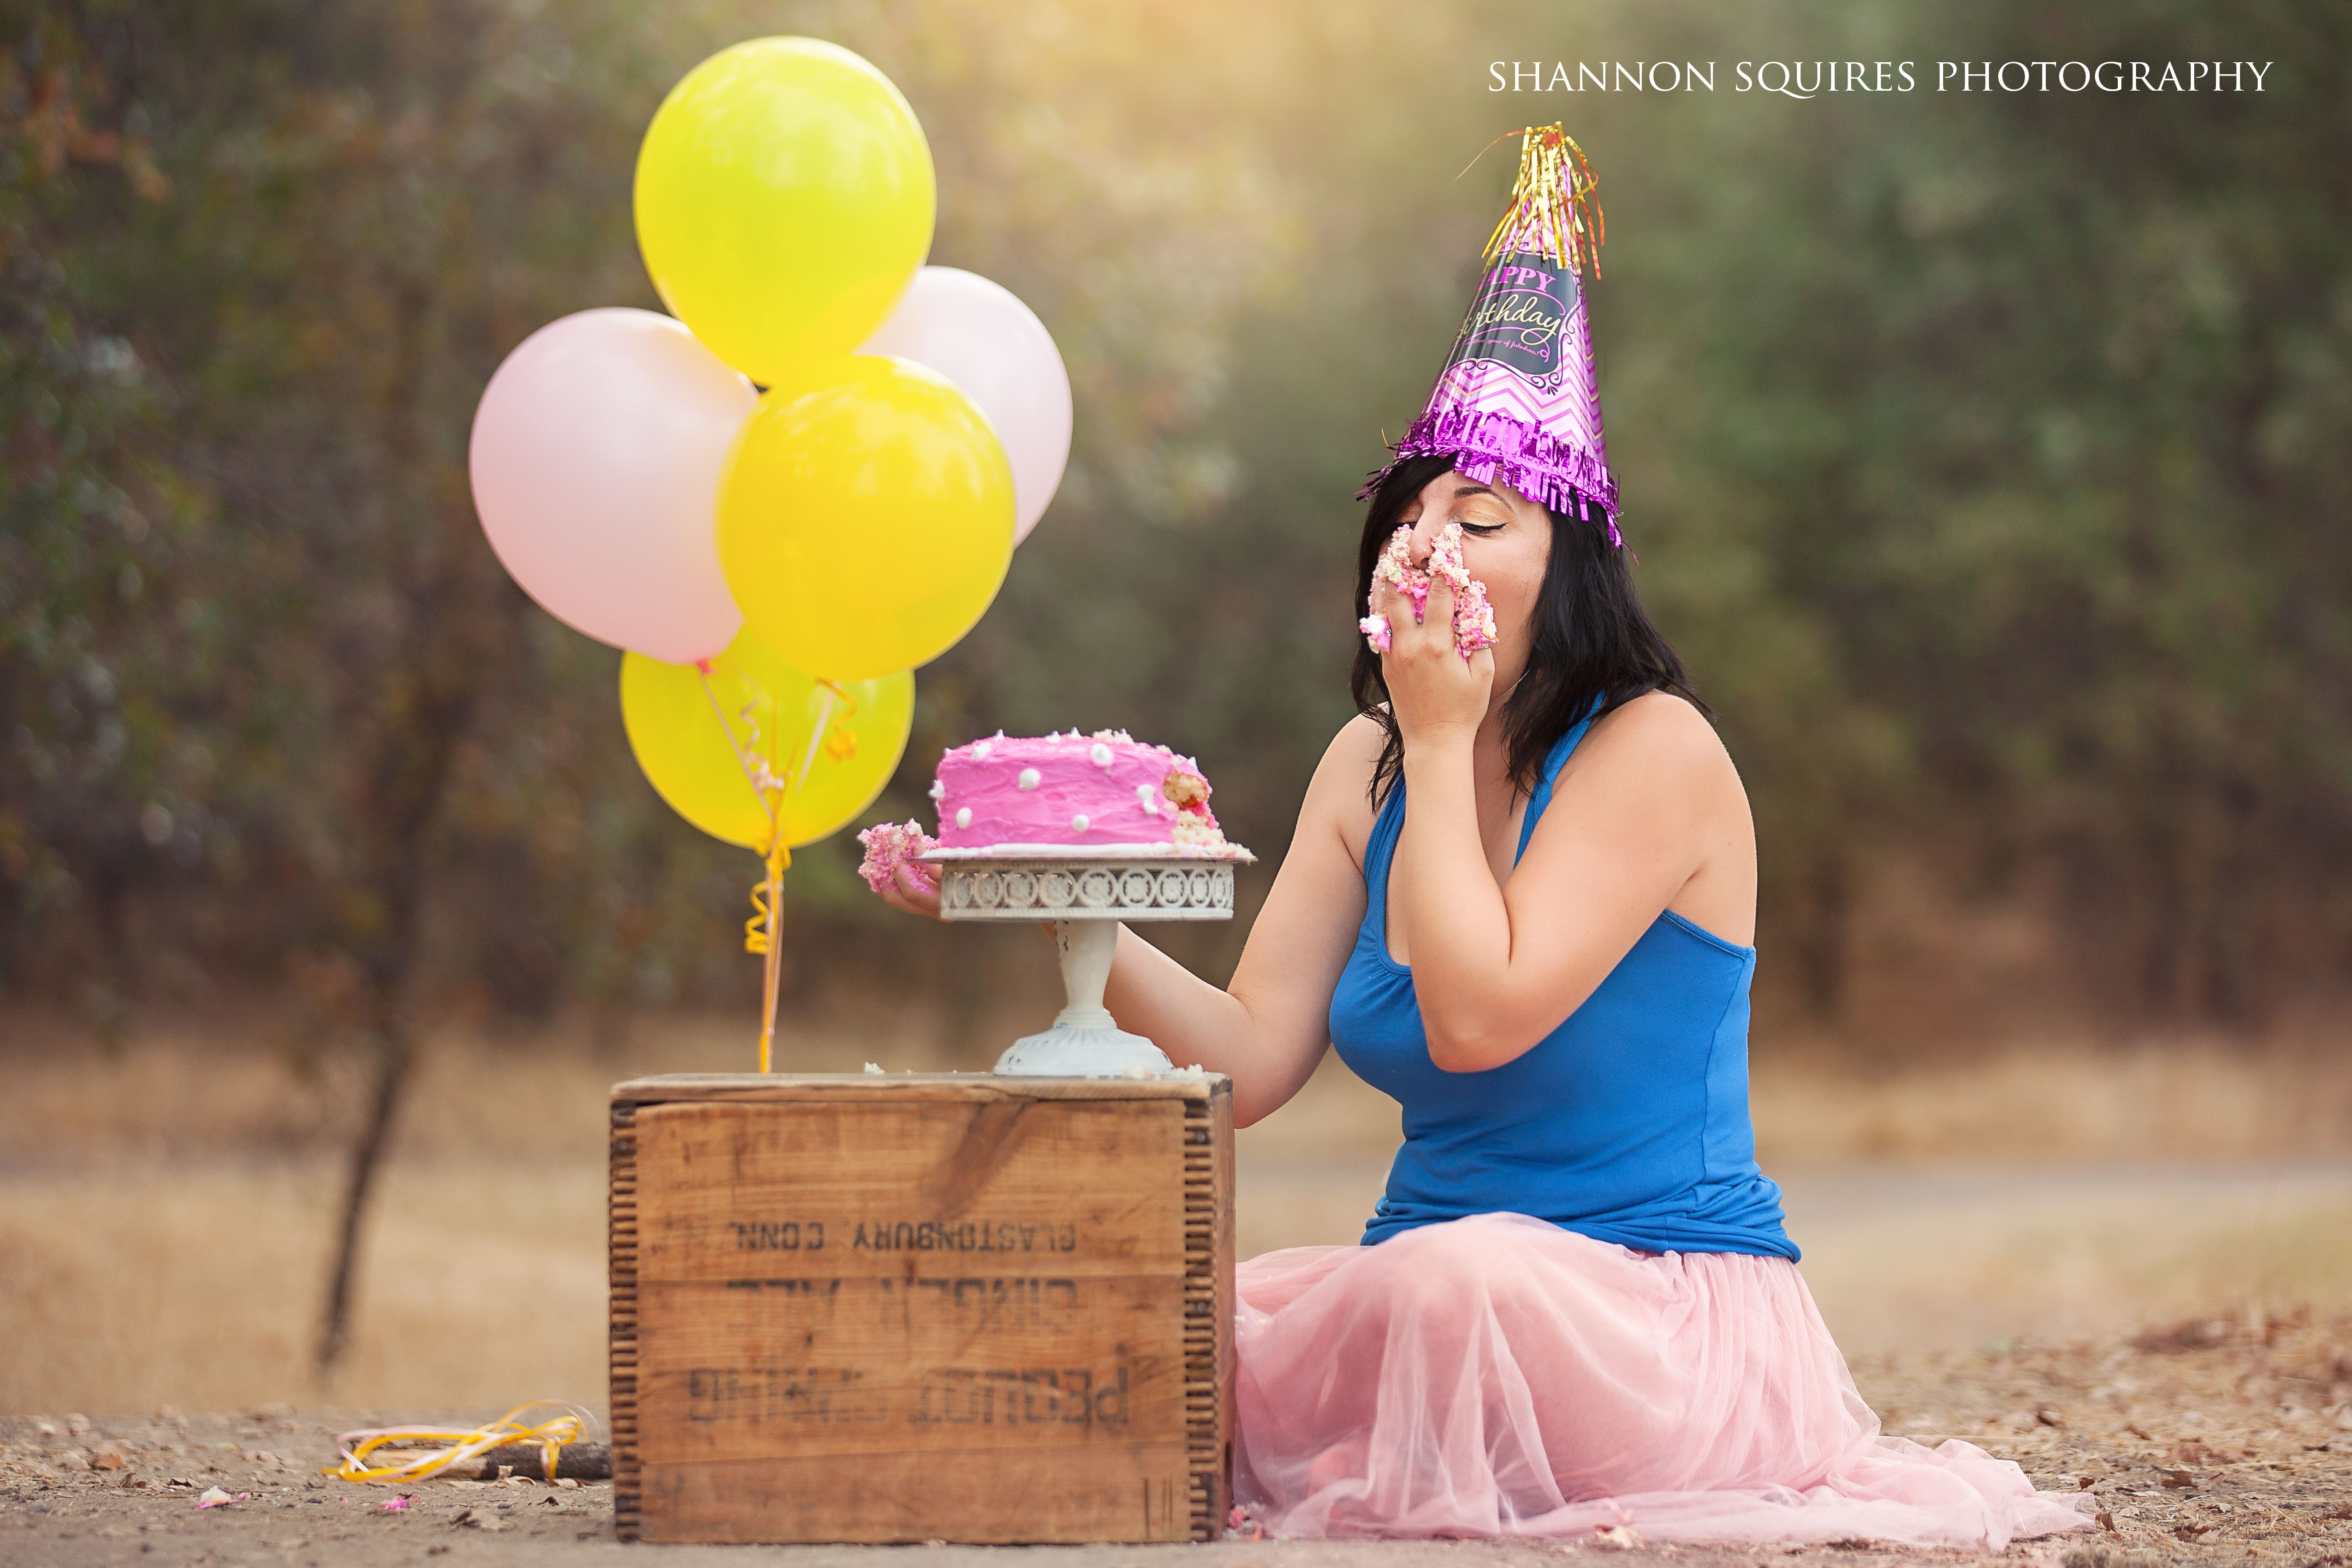 shannon-squires-sabrina-adult-cake-shoot